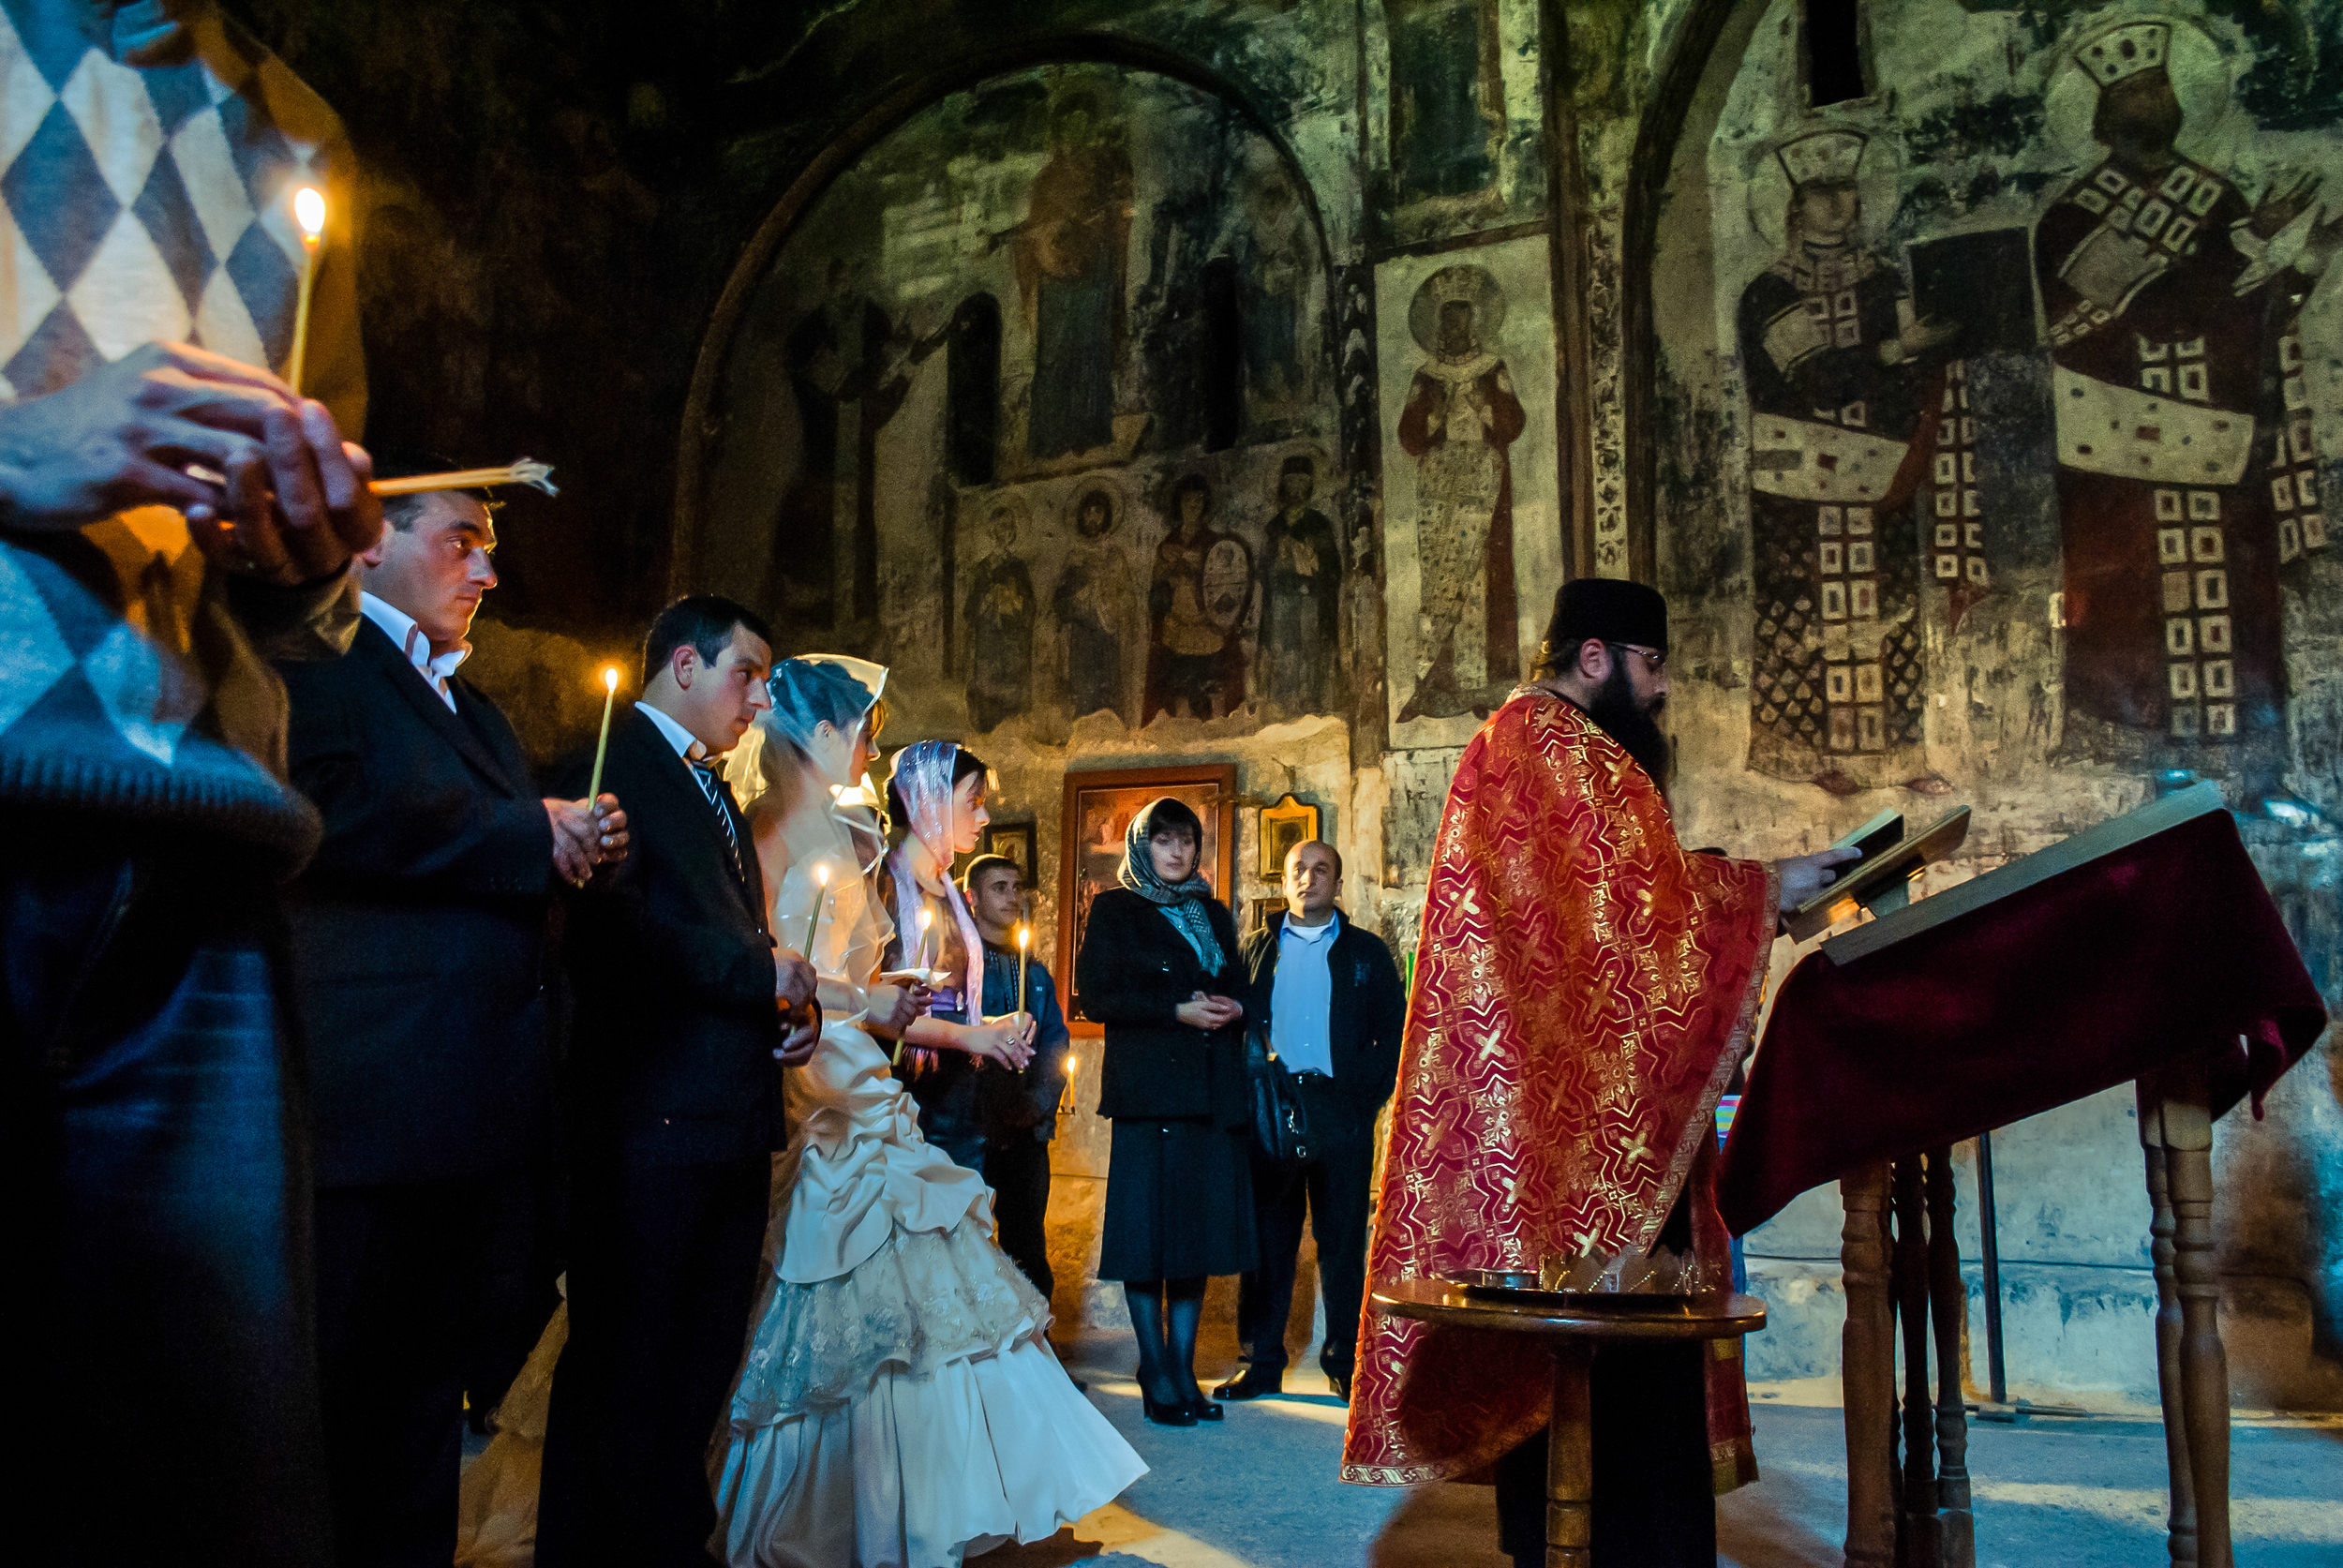 A wedding inside the 12th century Virgin's Assumption Church inside the Vardzia complex.